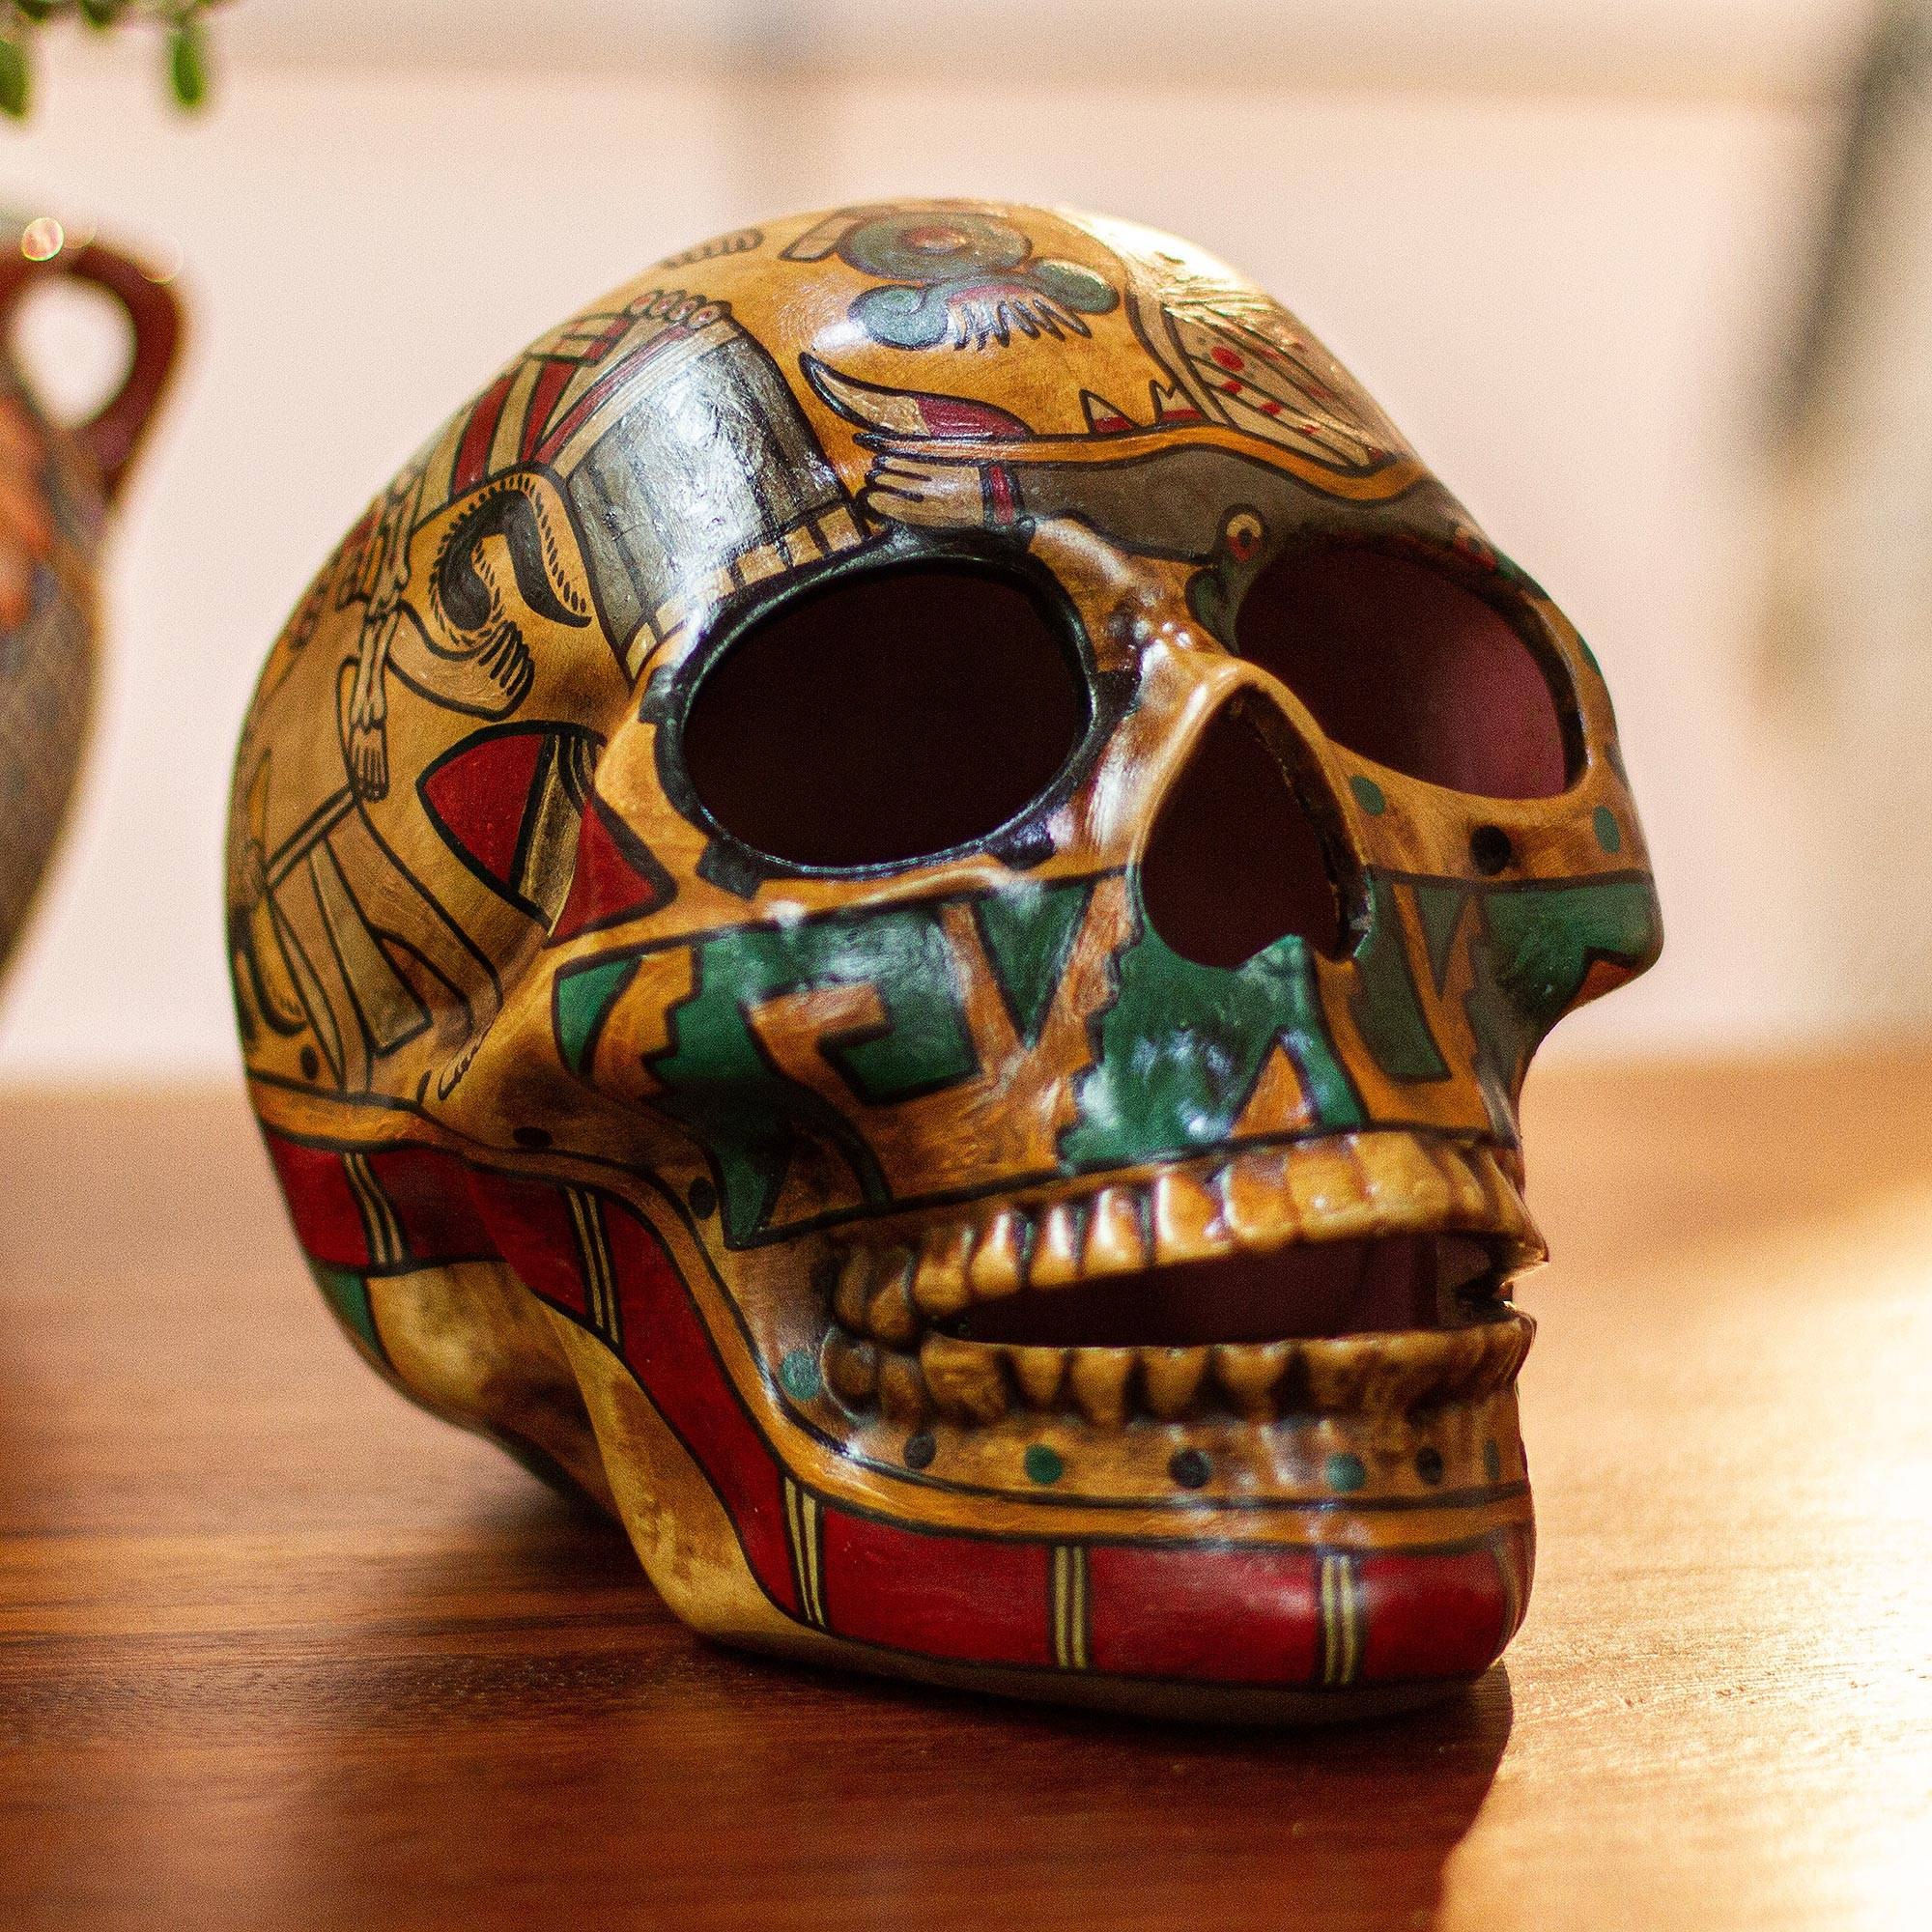 Story of Death Handcrafted Multicolor Ceramic Skull Sculpture from Mexico Day of the dead